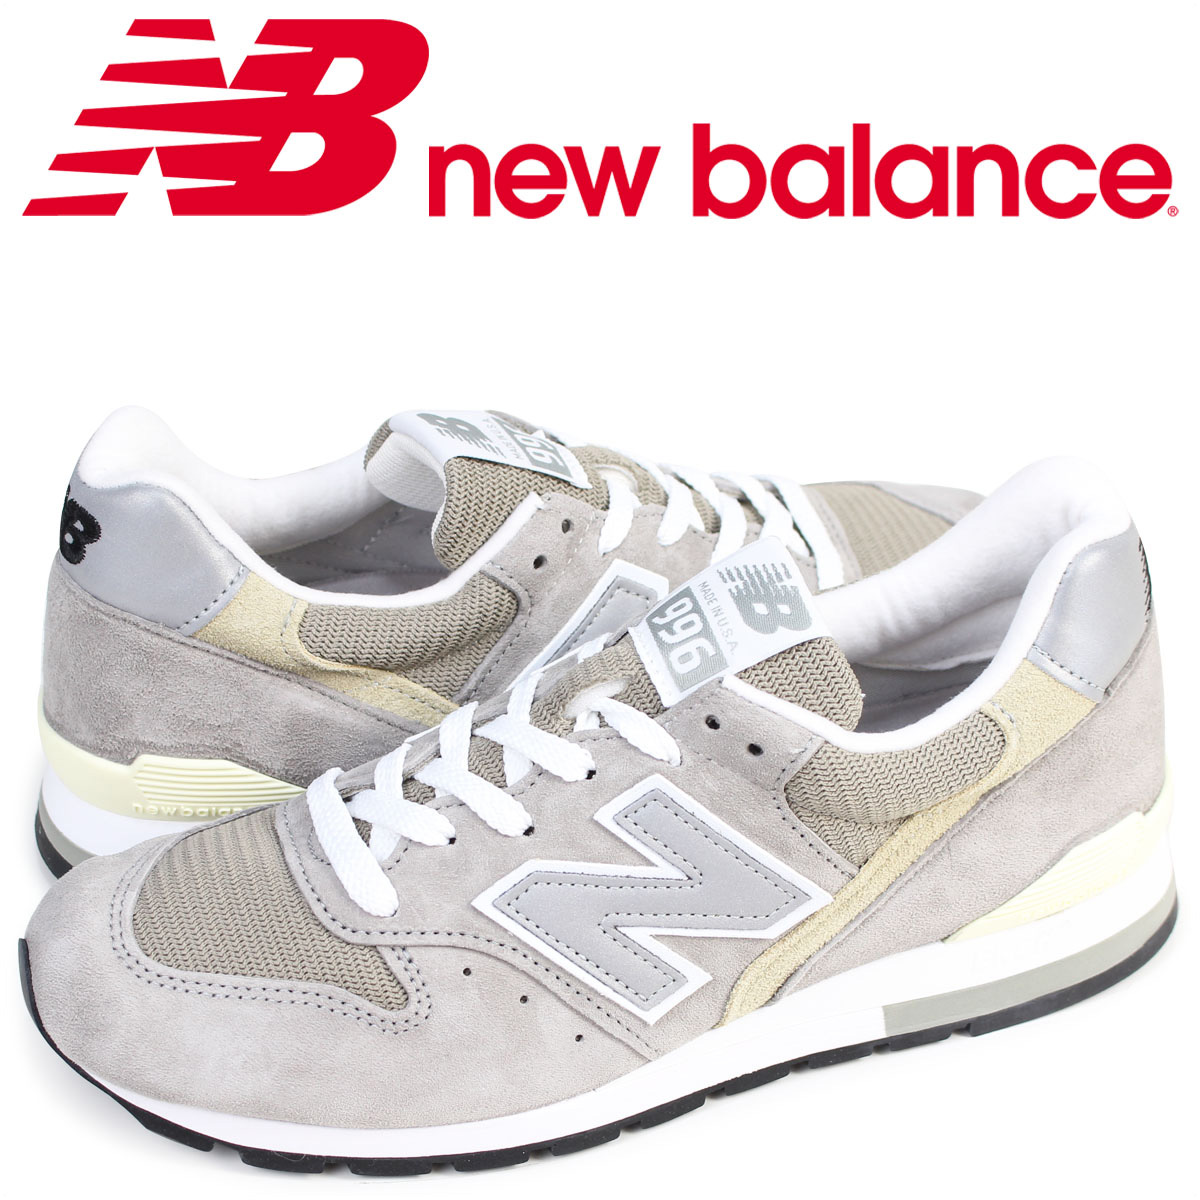 new balance M996 GY ニューバランス 996 スニーカー MADE IN USA Dワイズ メンズ 靴 グレー [4/23 追加入荷]